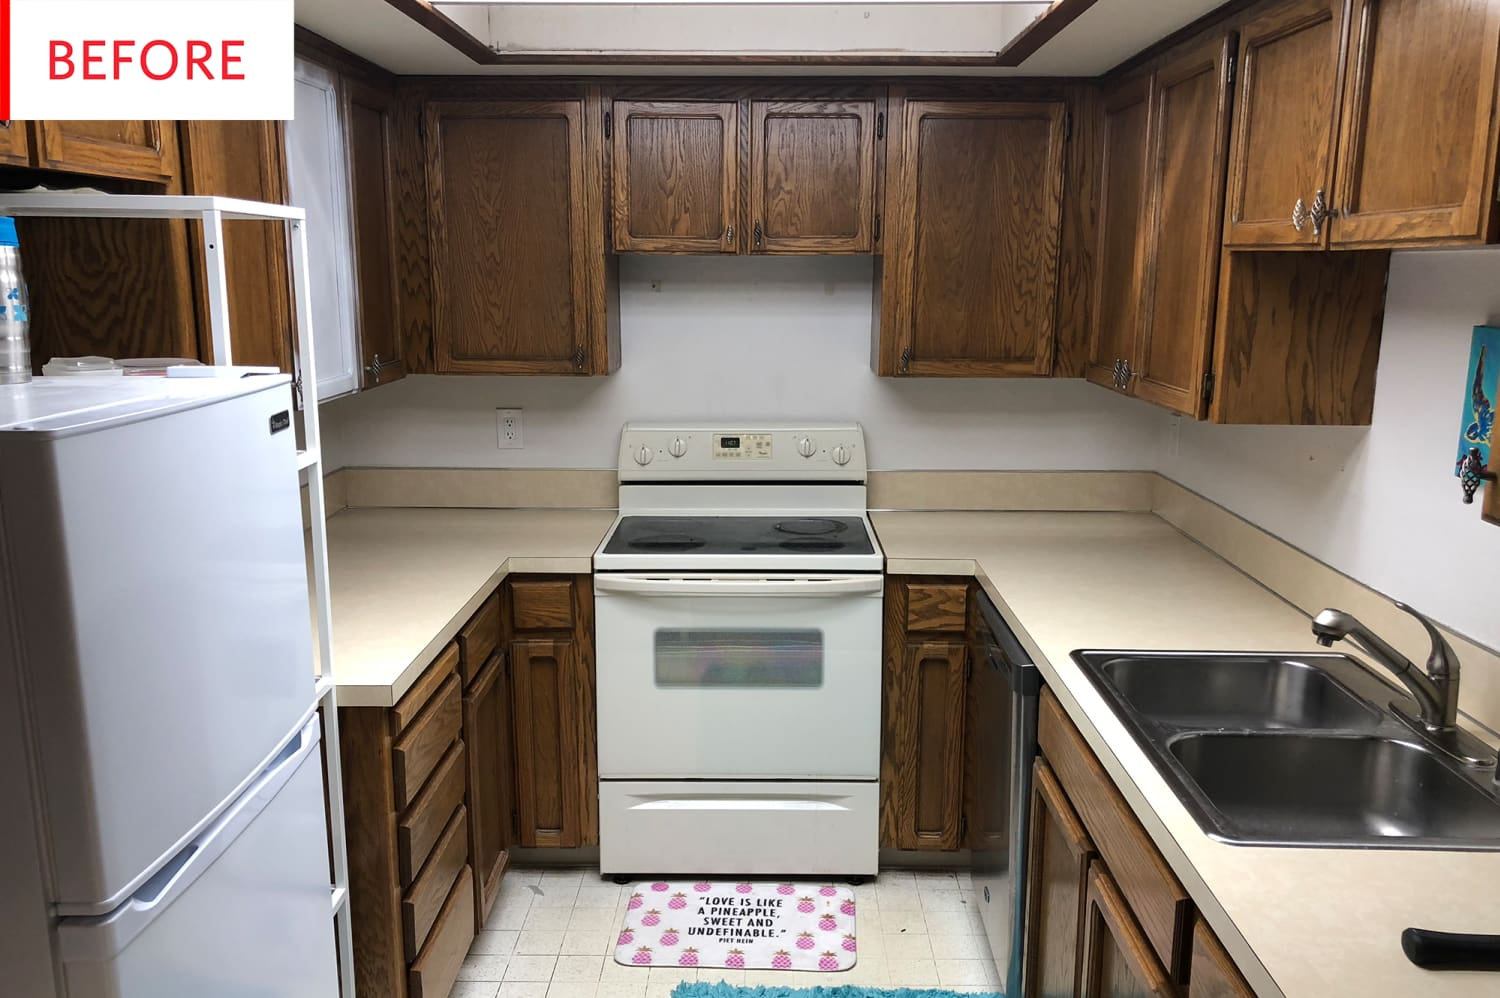 Before and After: This Low Budget Kitchen Remodel Was DIYed from Head to Toe